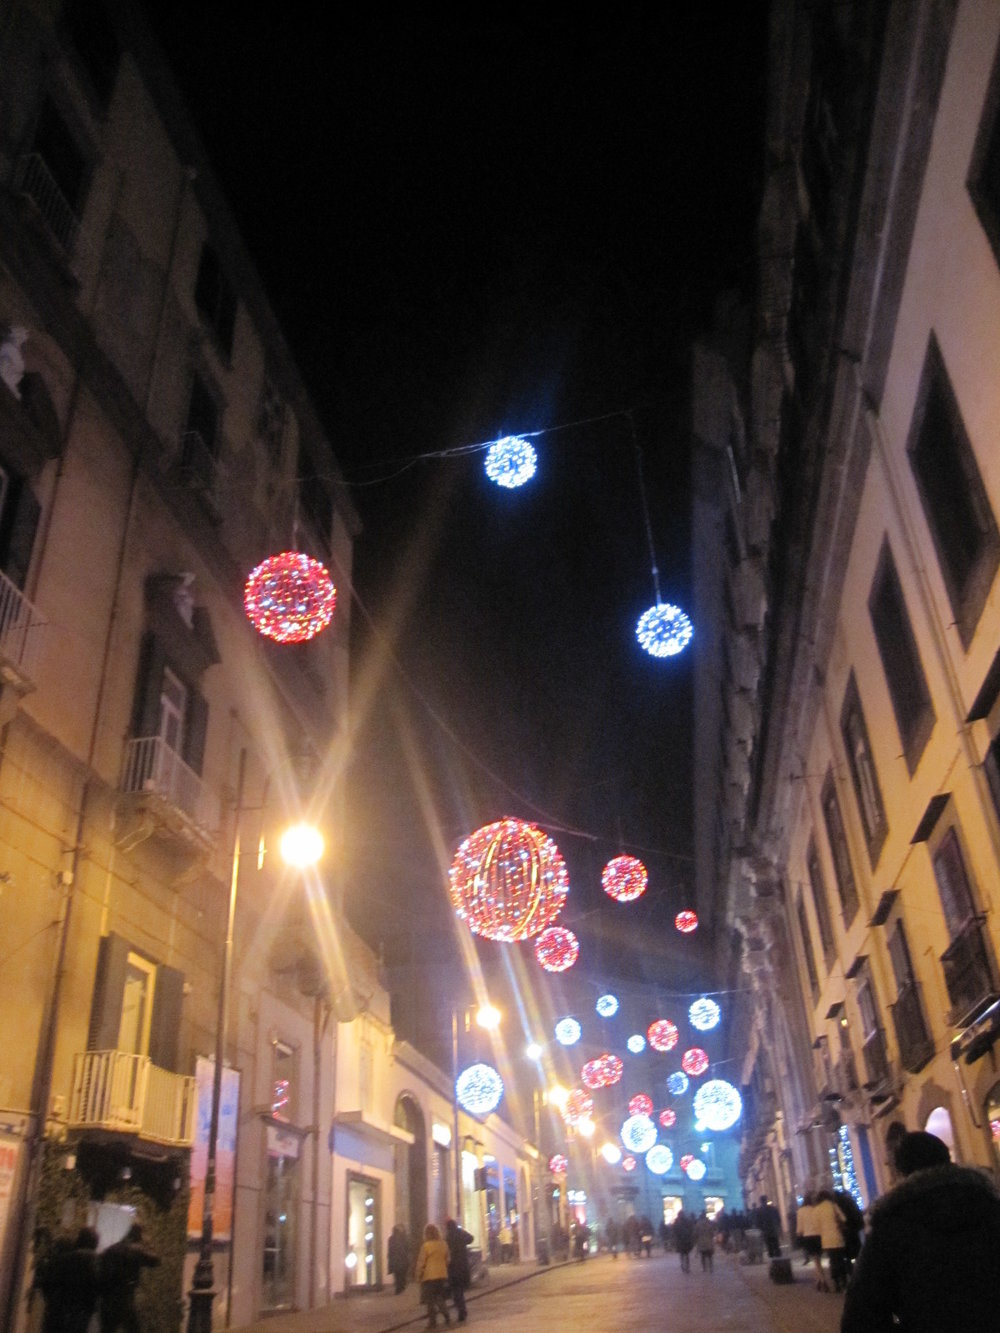 Decorations all around Napoli: via dei Mille.